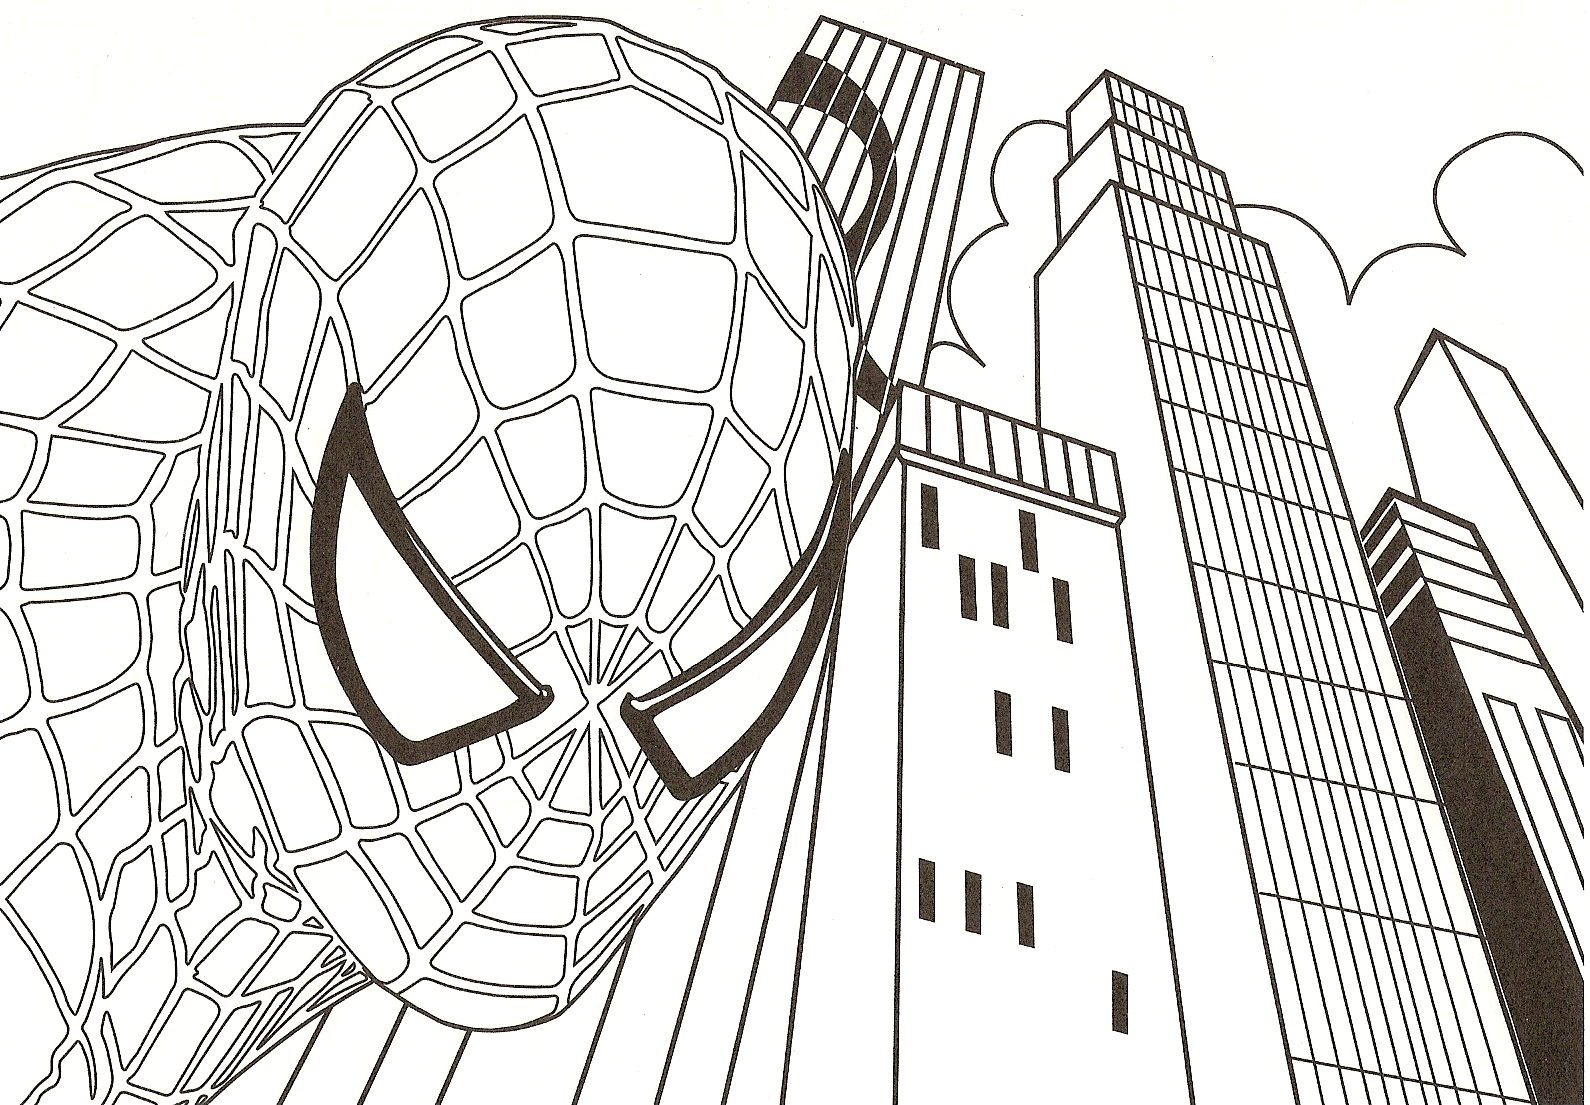 coloriage spiderman, son visage et dessin à colorier spiderman